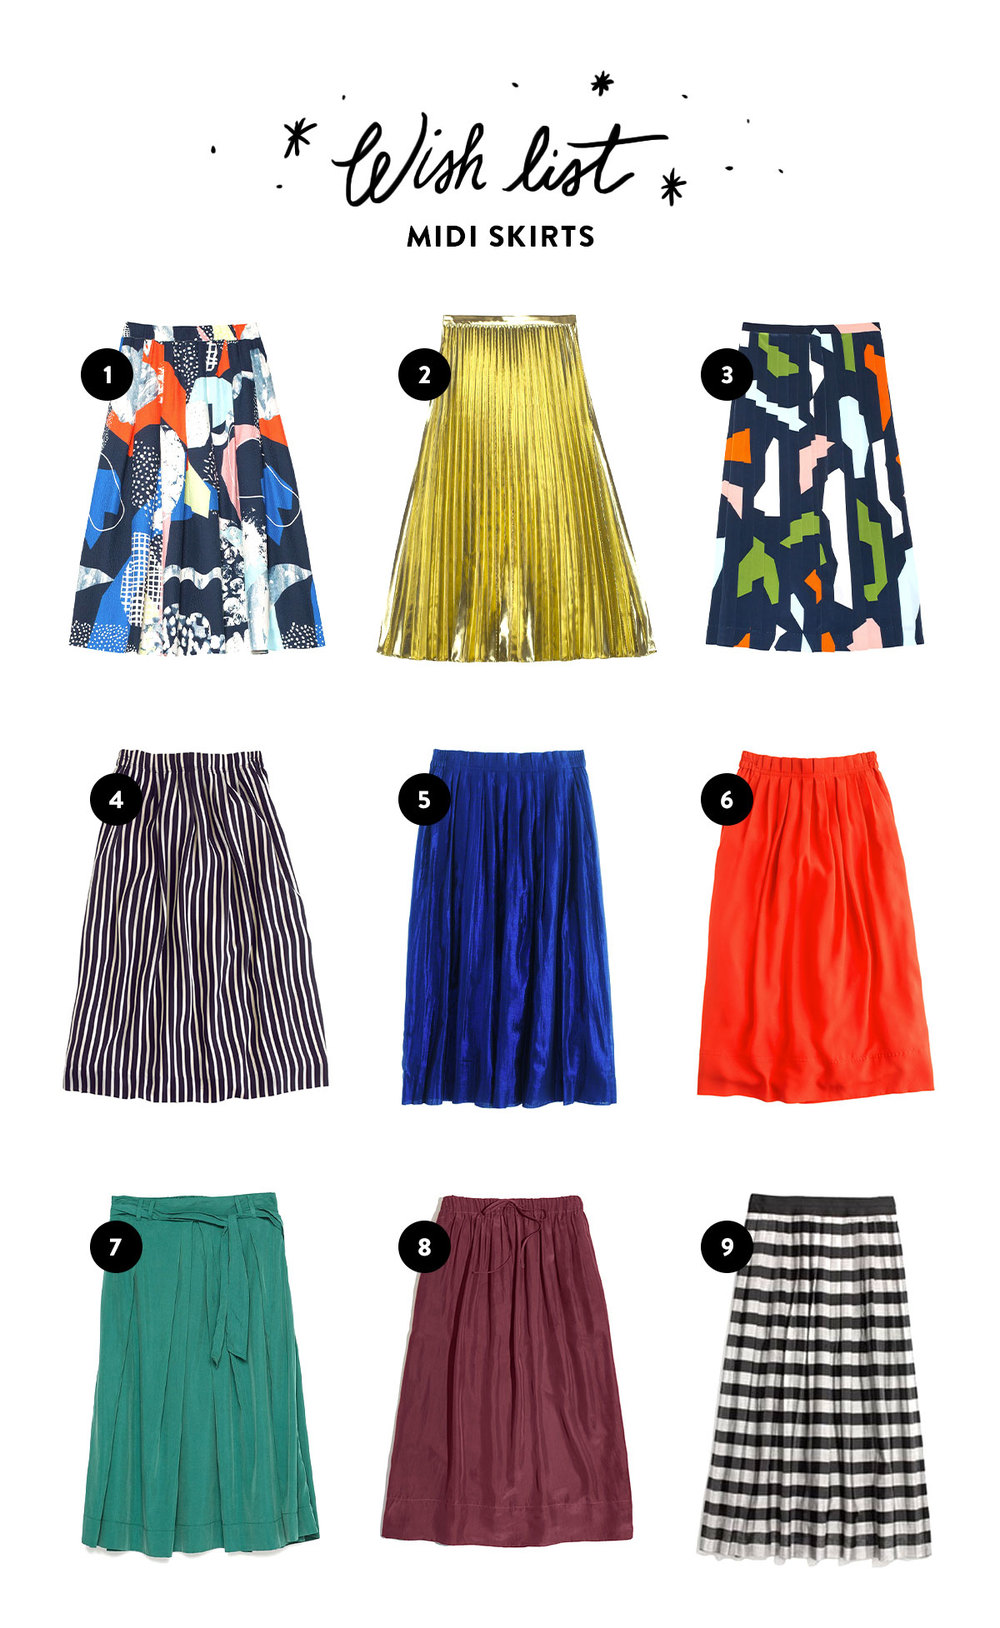 Wish List: Midi Skirts